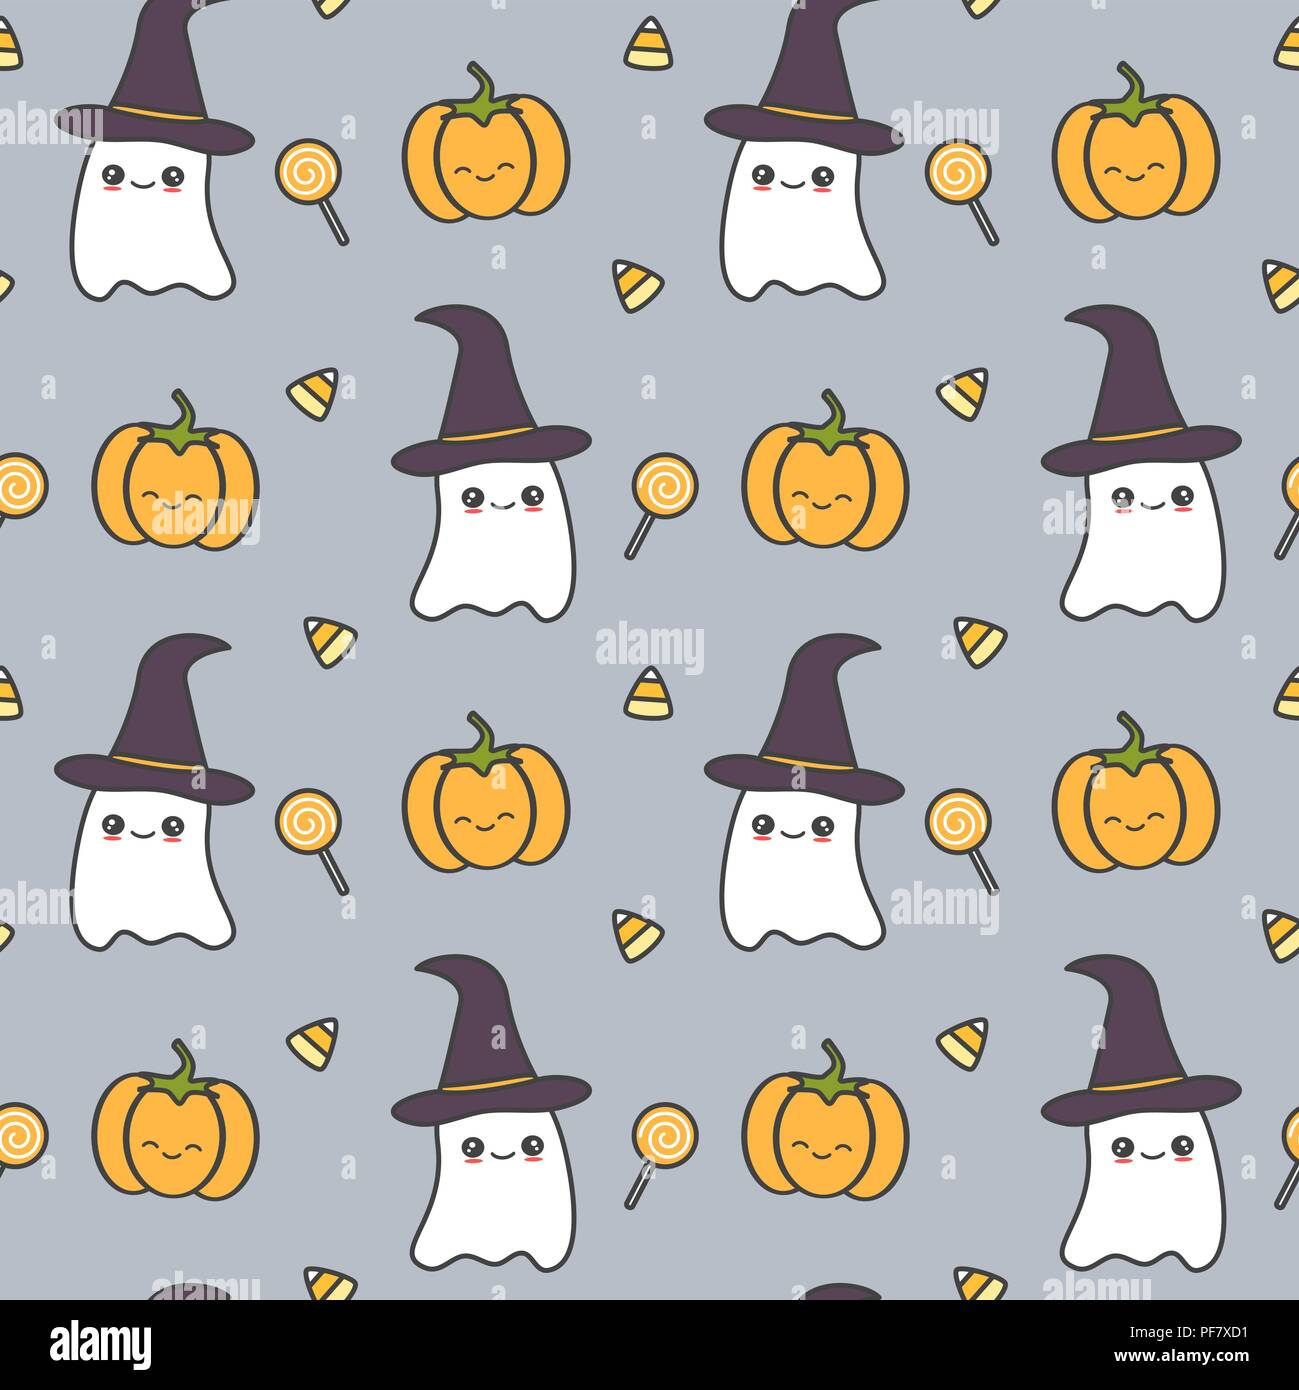 Cute Halloween Backgrounds.Cute Halloween Seamless Vector Pattern Background Illustration With Ghost Pumpkin And Candies Stock Vector Image Art Alamy